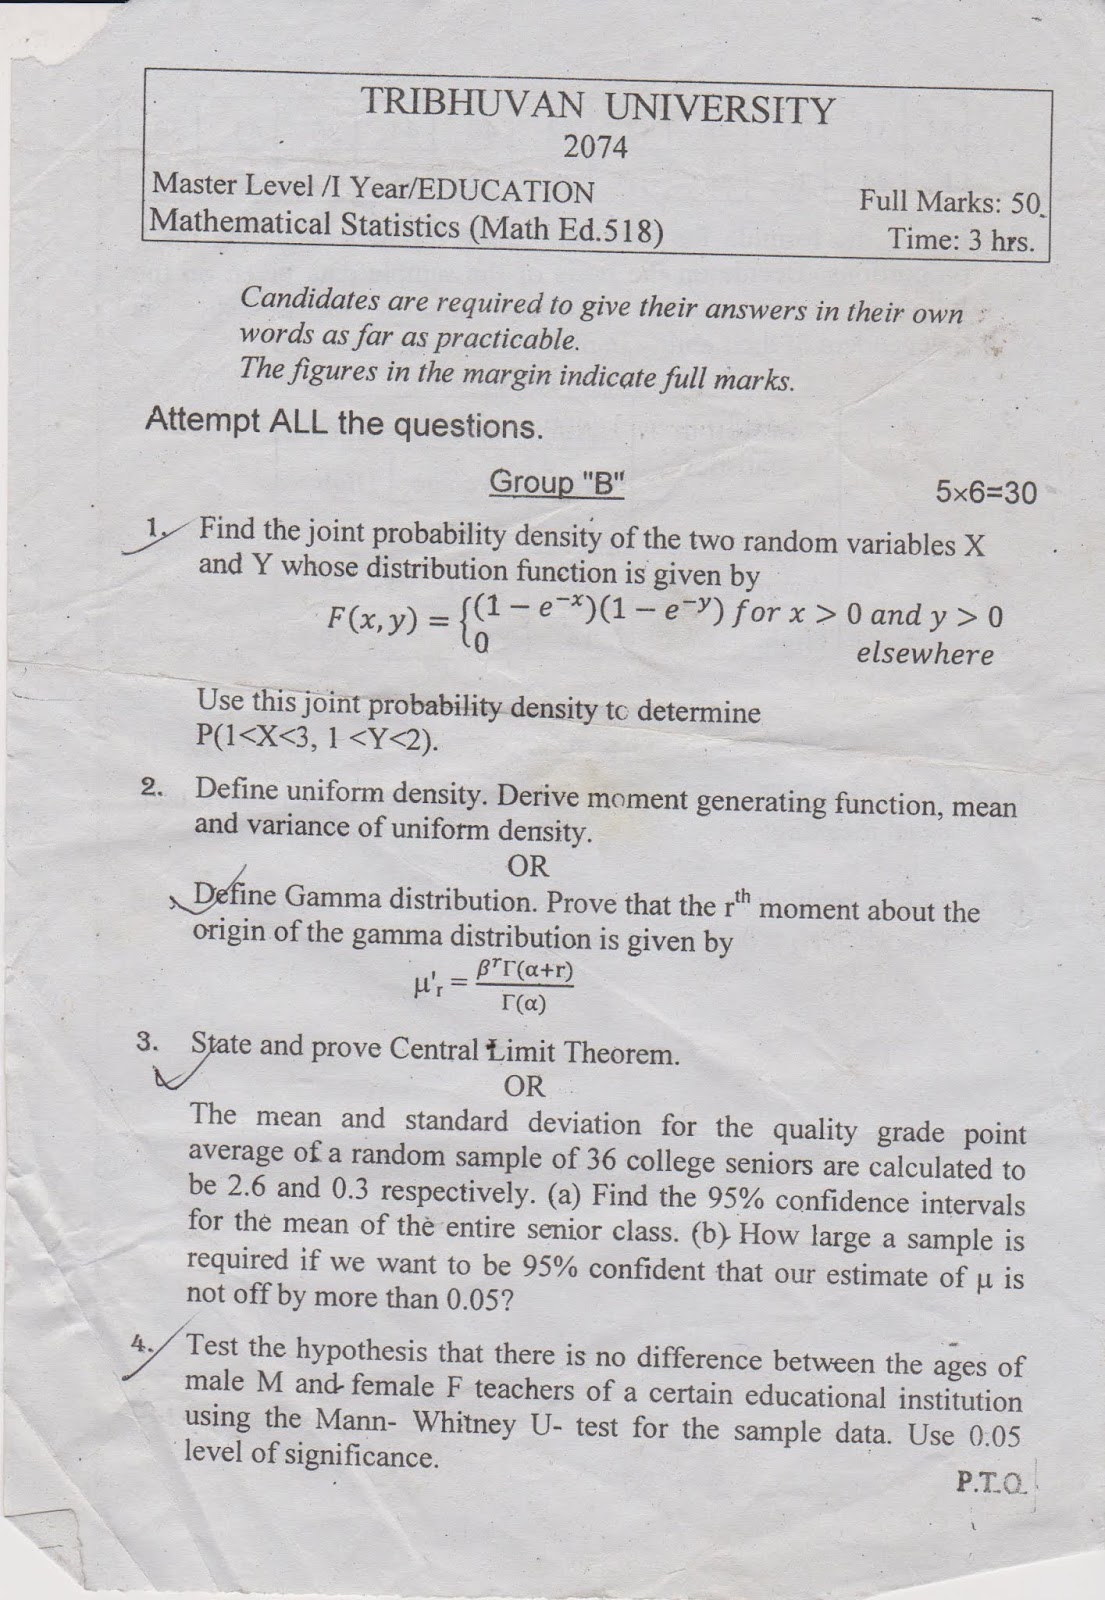 MEd First Year, Mathematical Statistics Question Paper